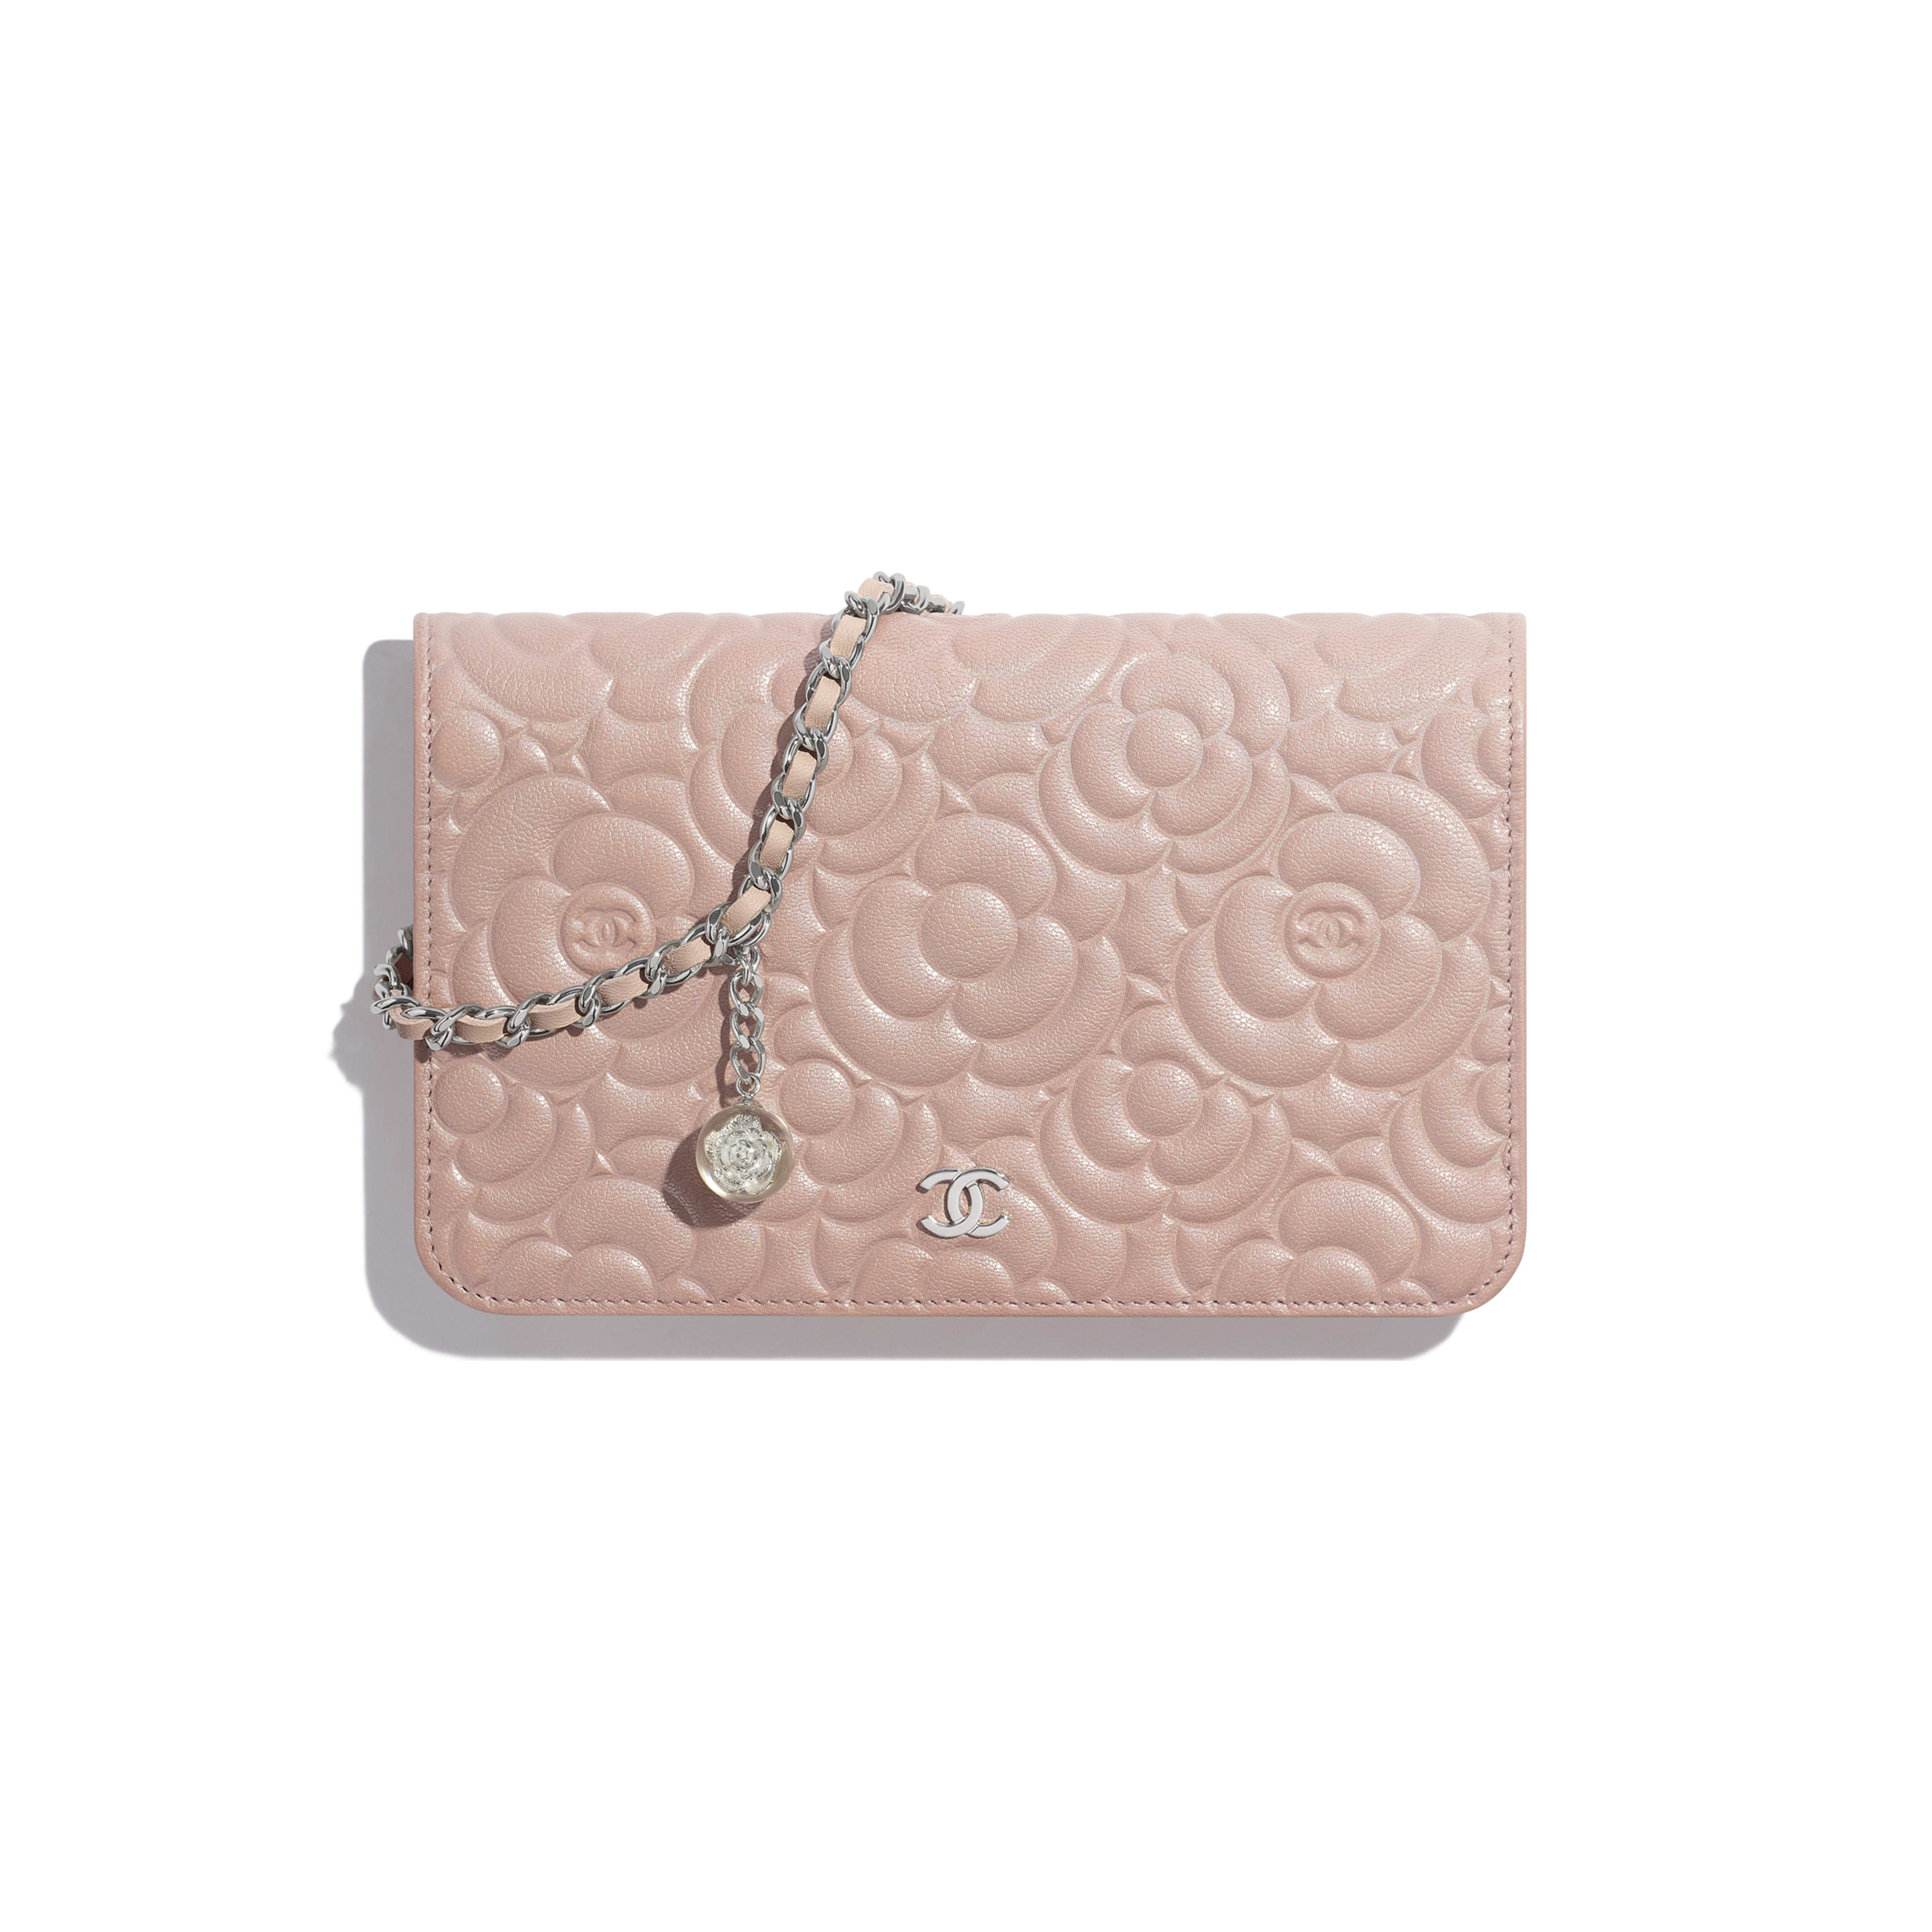 Wallet on Chain - Light Pink - Satin Finish Goatskin & Silver-Tone Metal - Default view - see full sized version